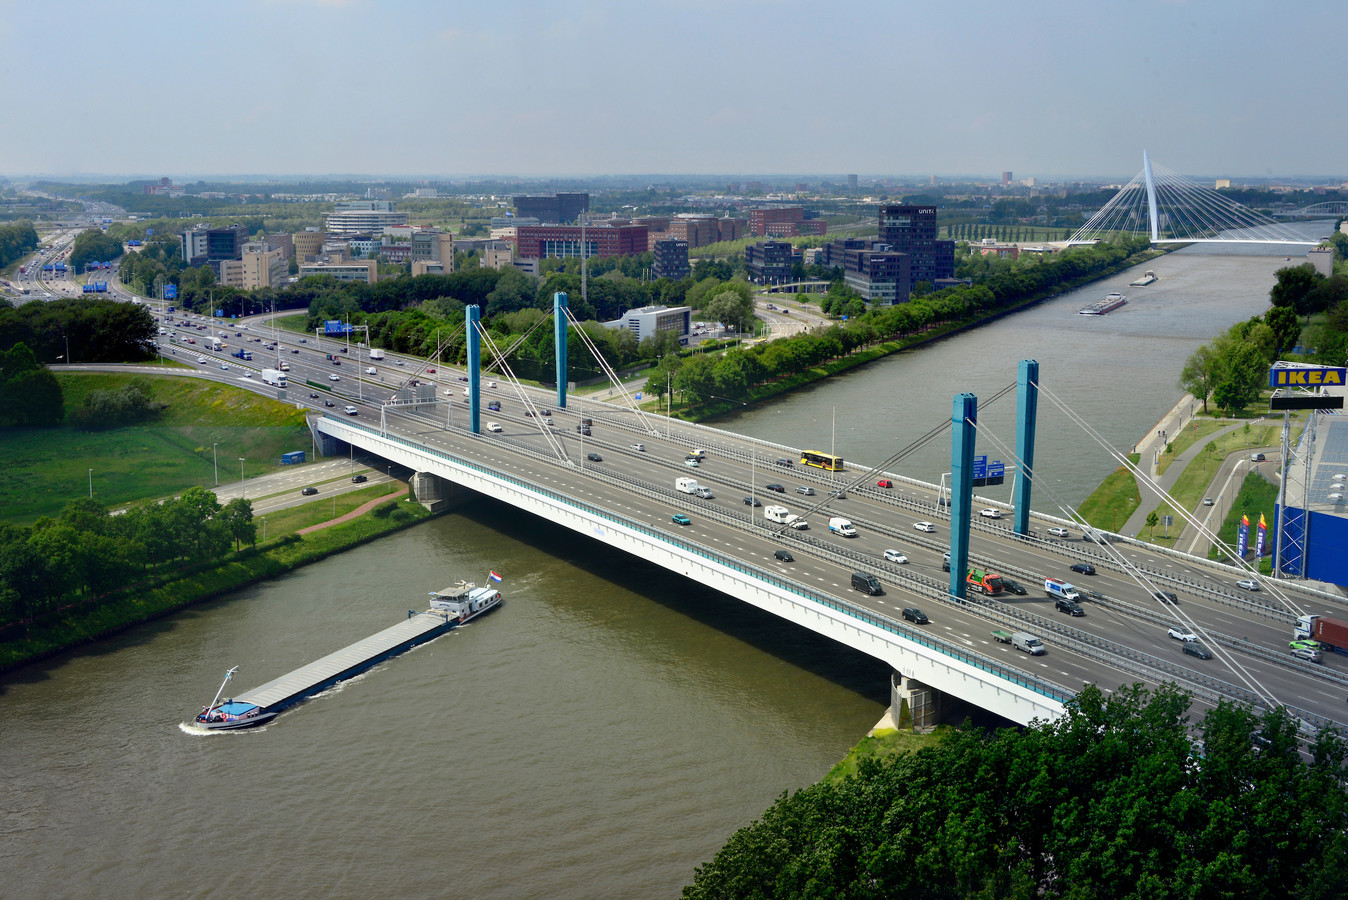 De Galecopperbrug